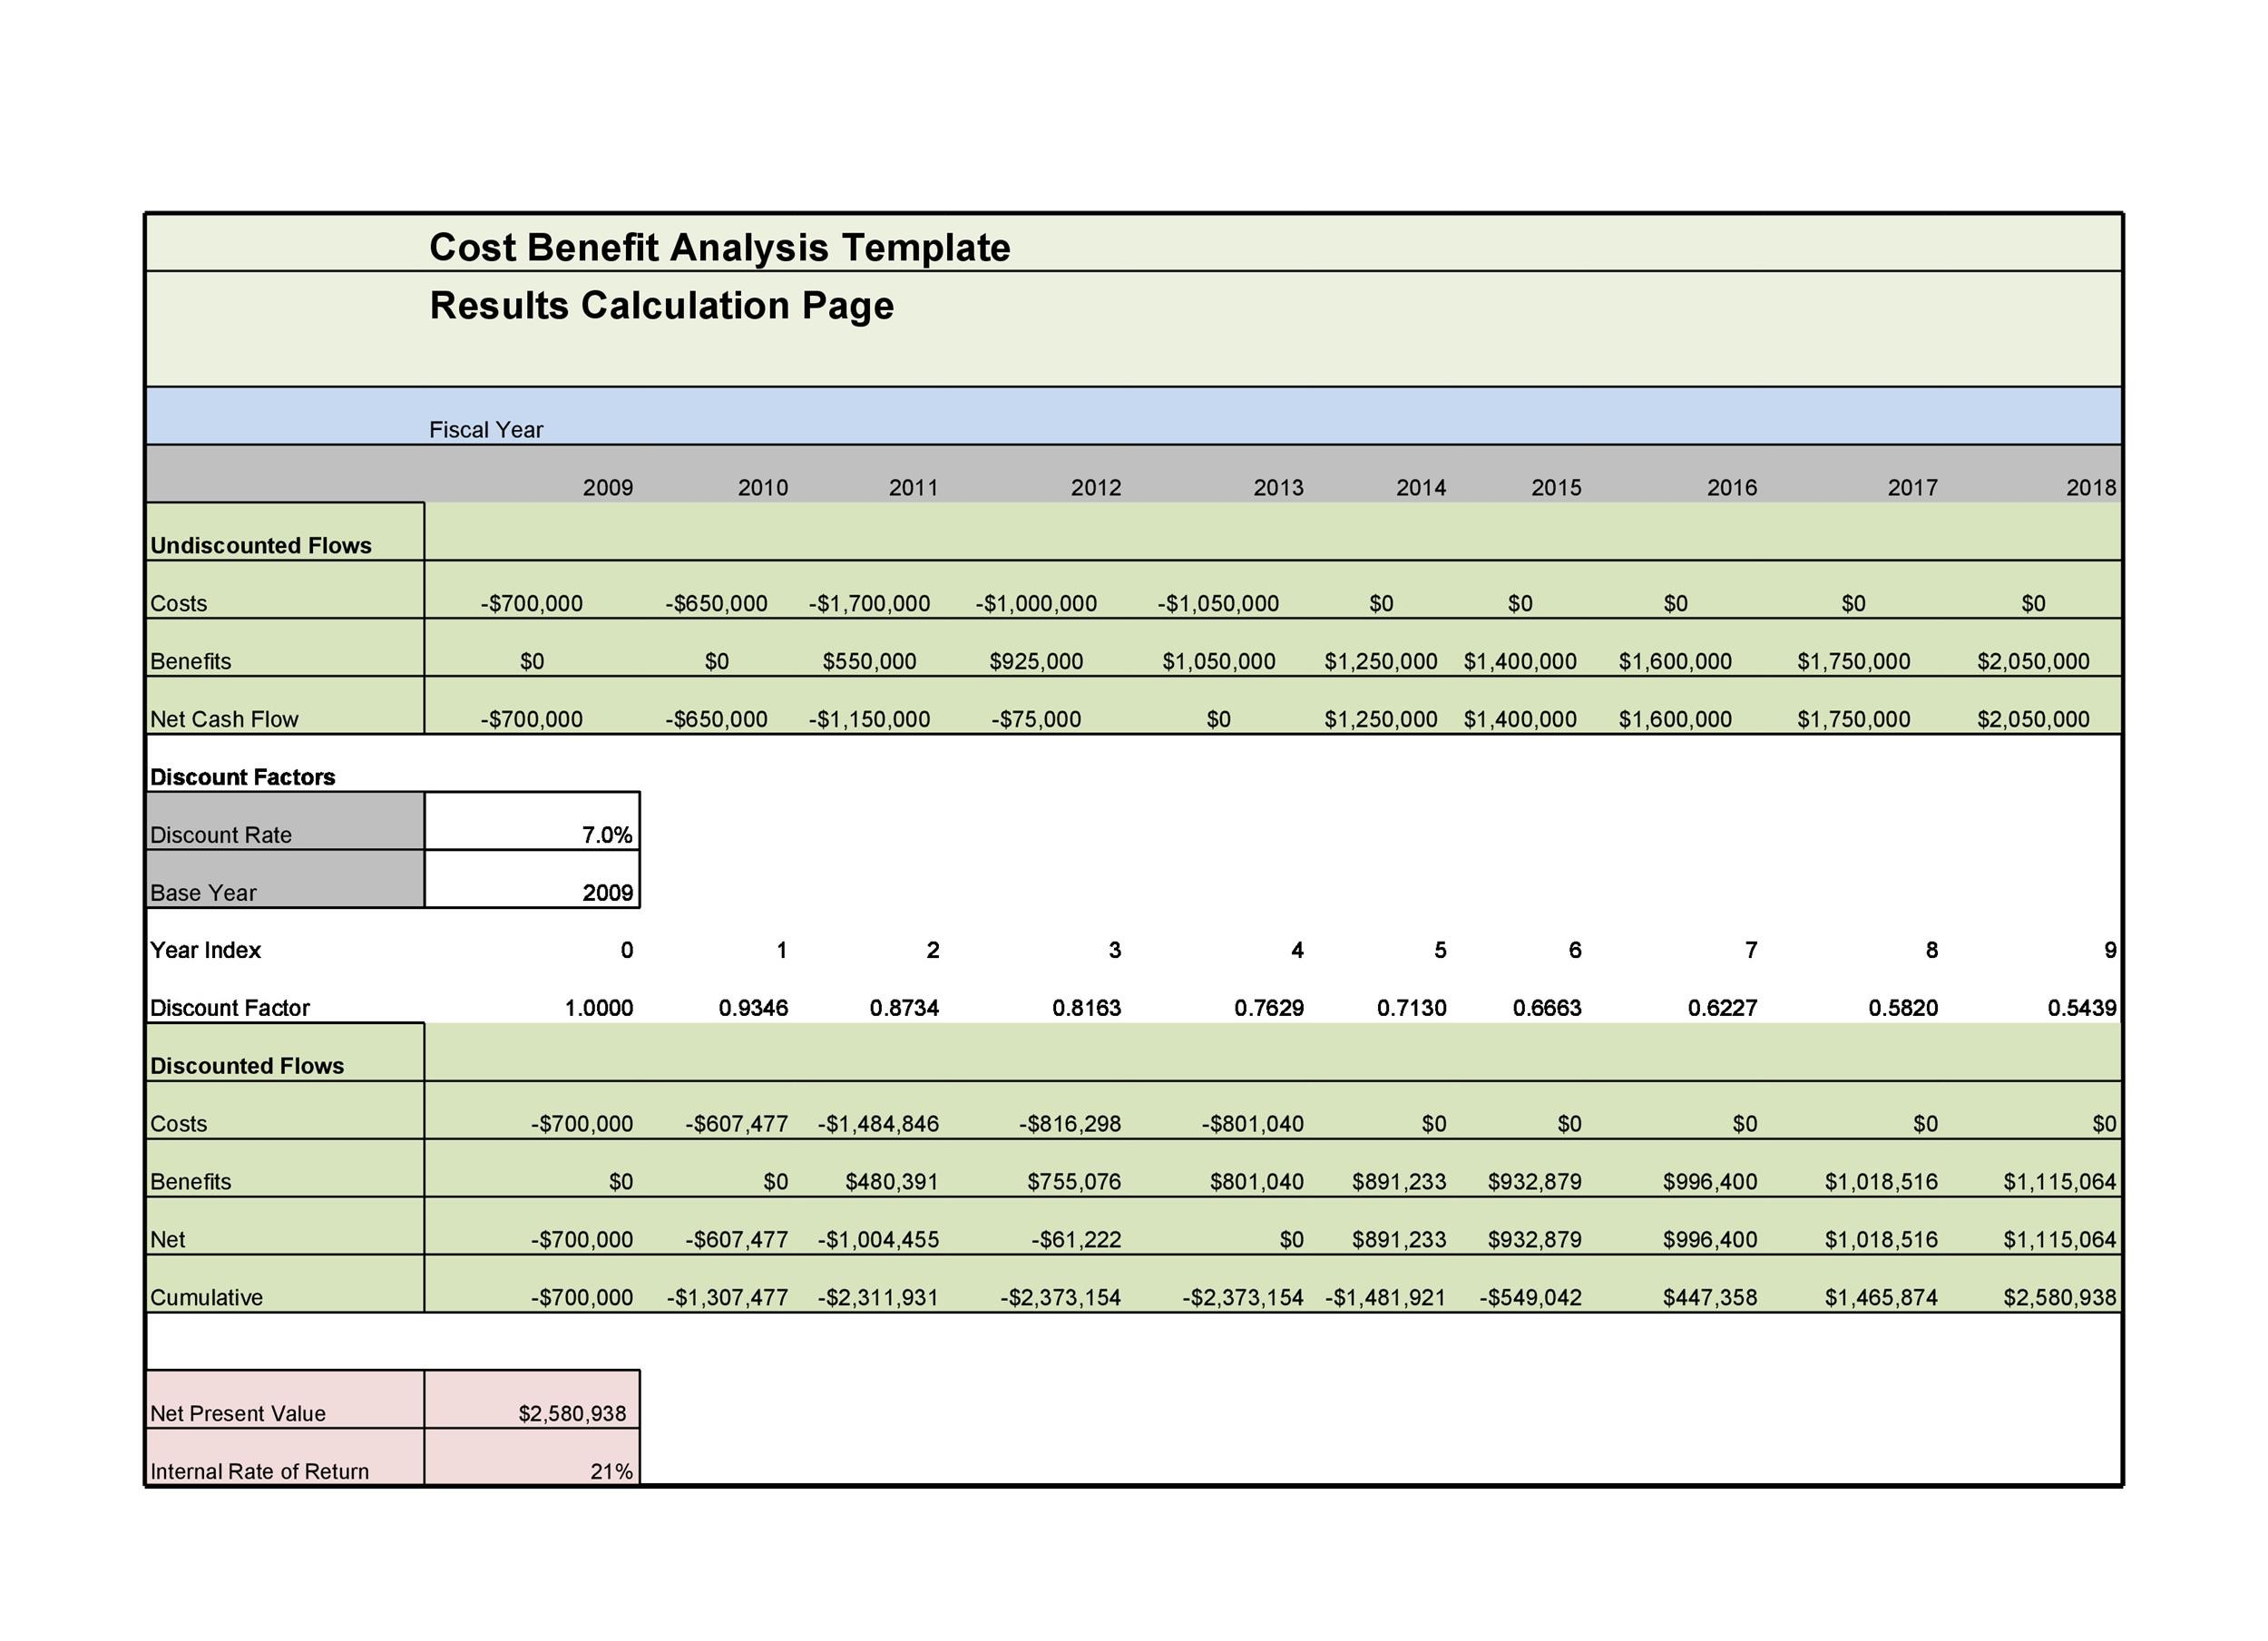 Cost Benefit Analysis Cost Benefit Analysis Excel Template Cost